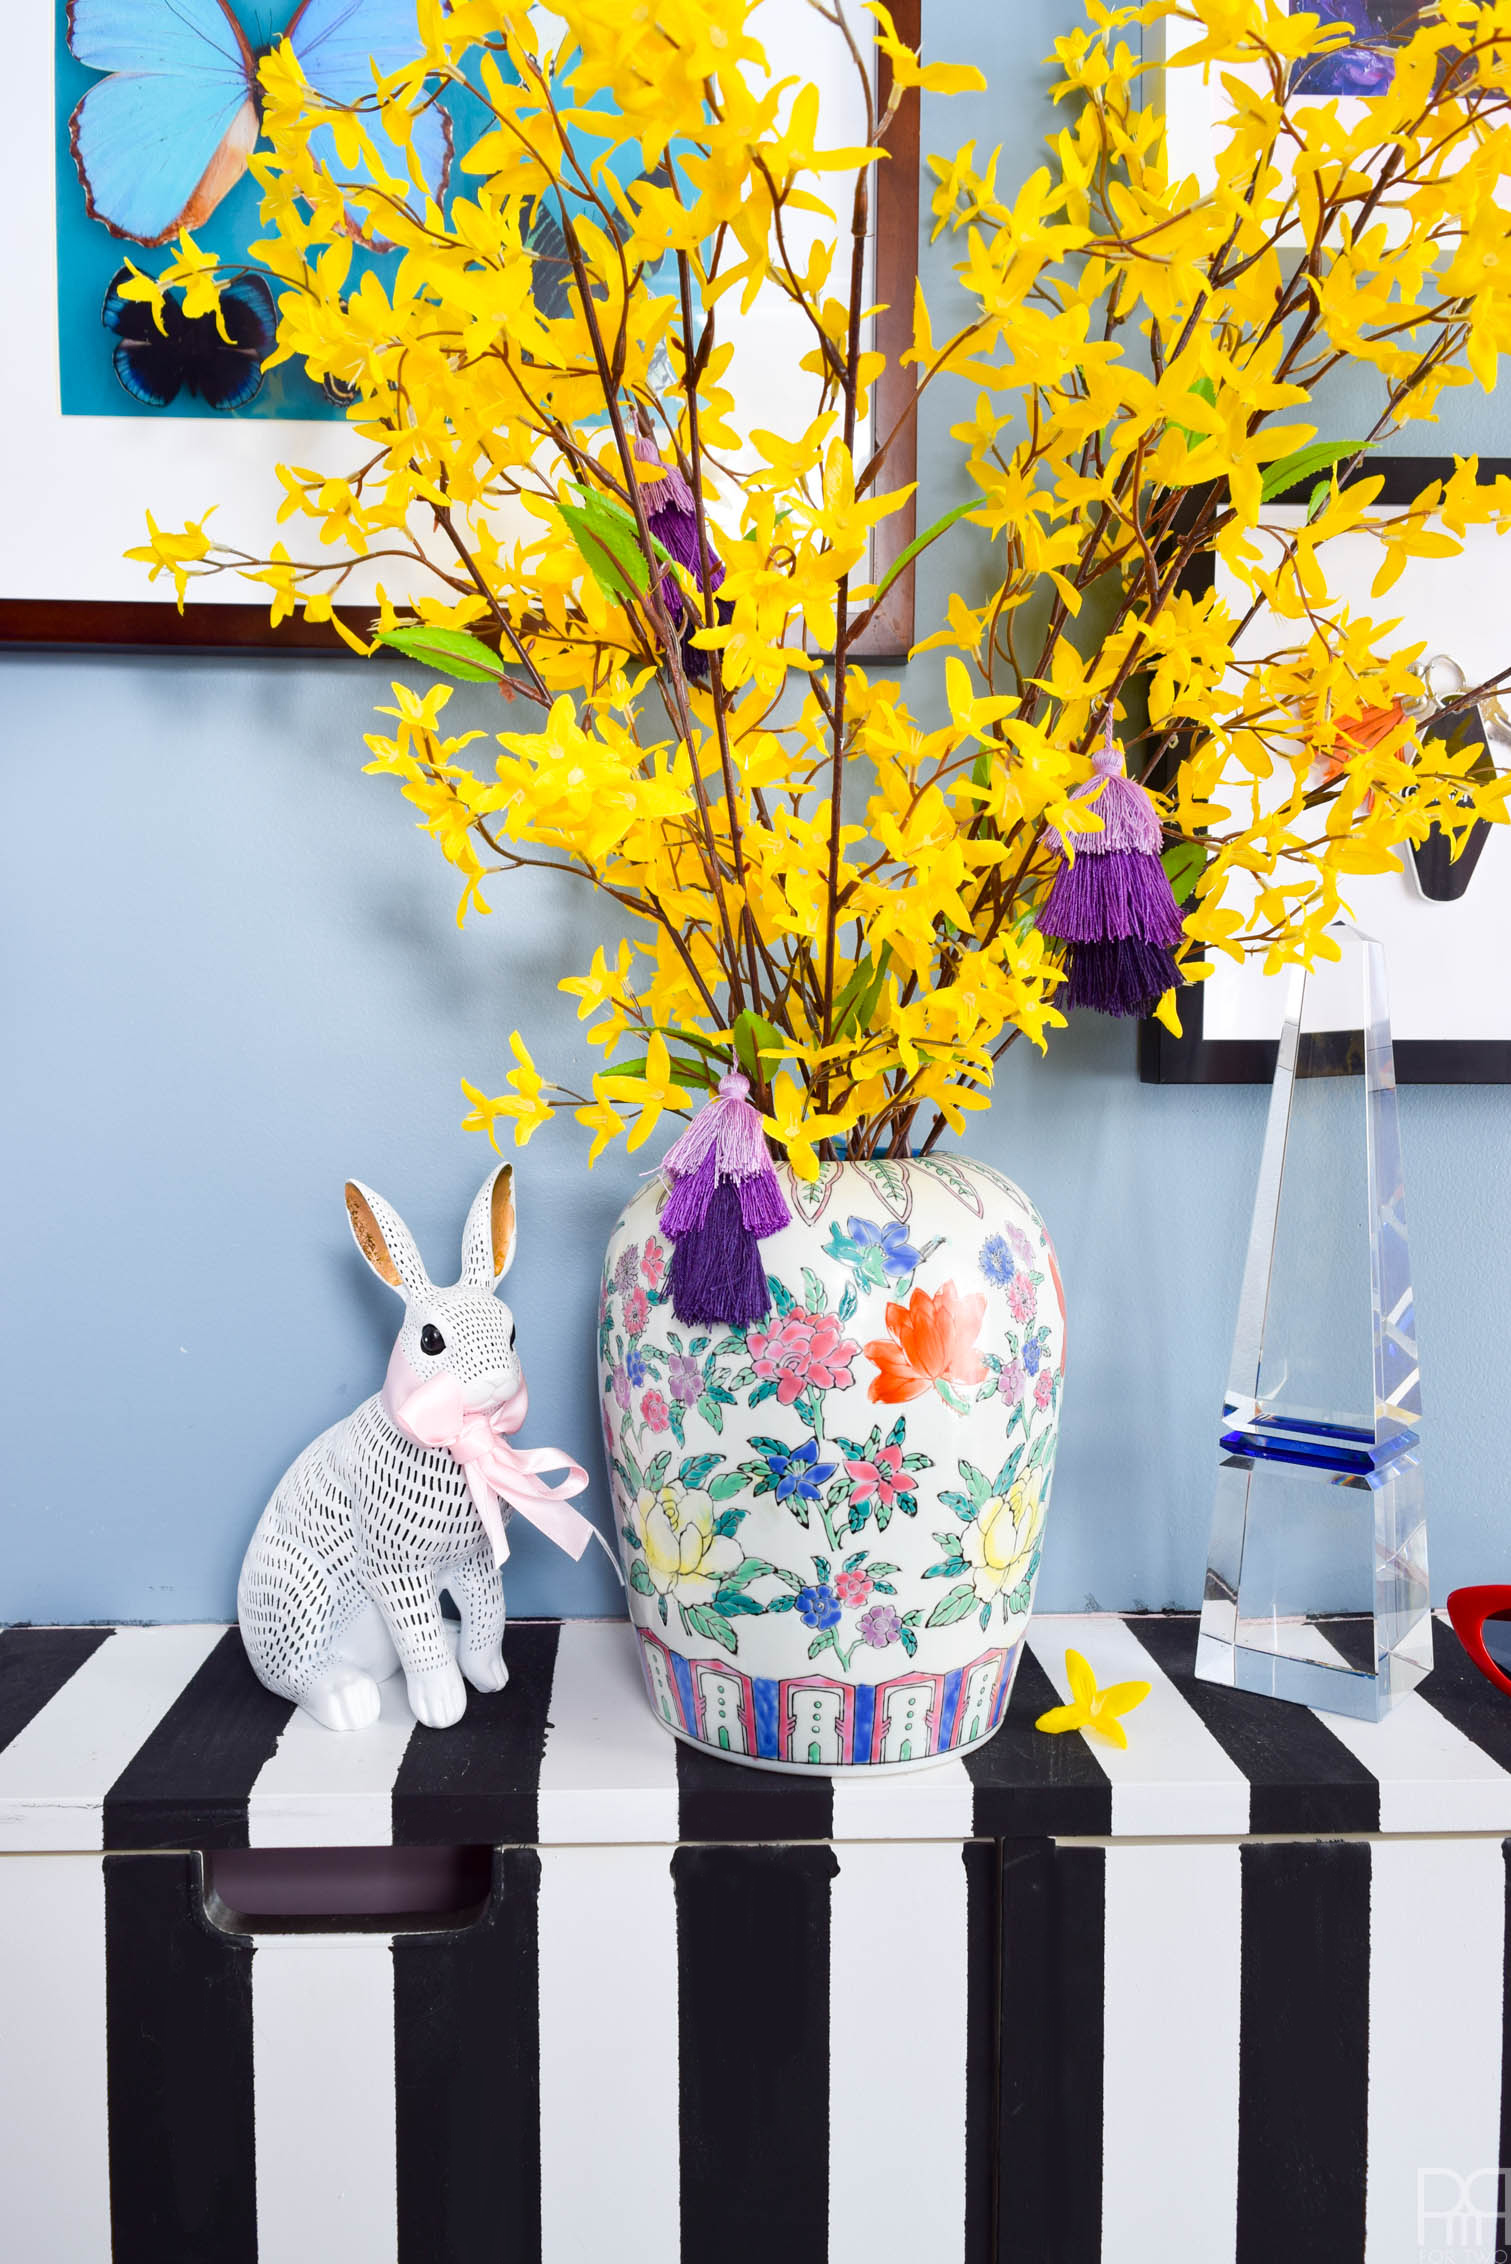 I've got a Curated Spring Living Room Decor situation that you need to see — they're small, colourful touches, that make my home feel fresh and ready for spring, and you can do the same in yours.